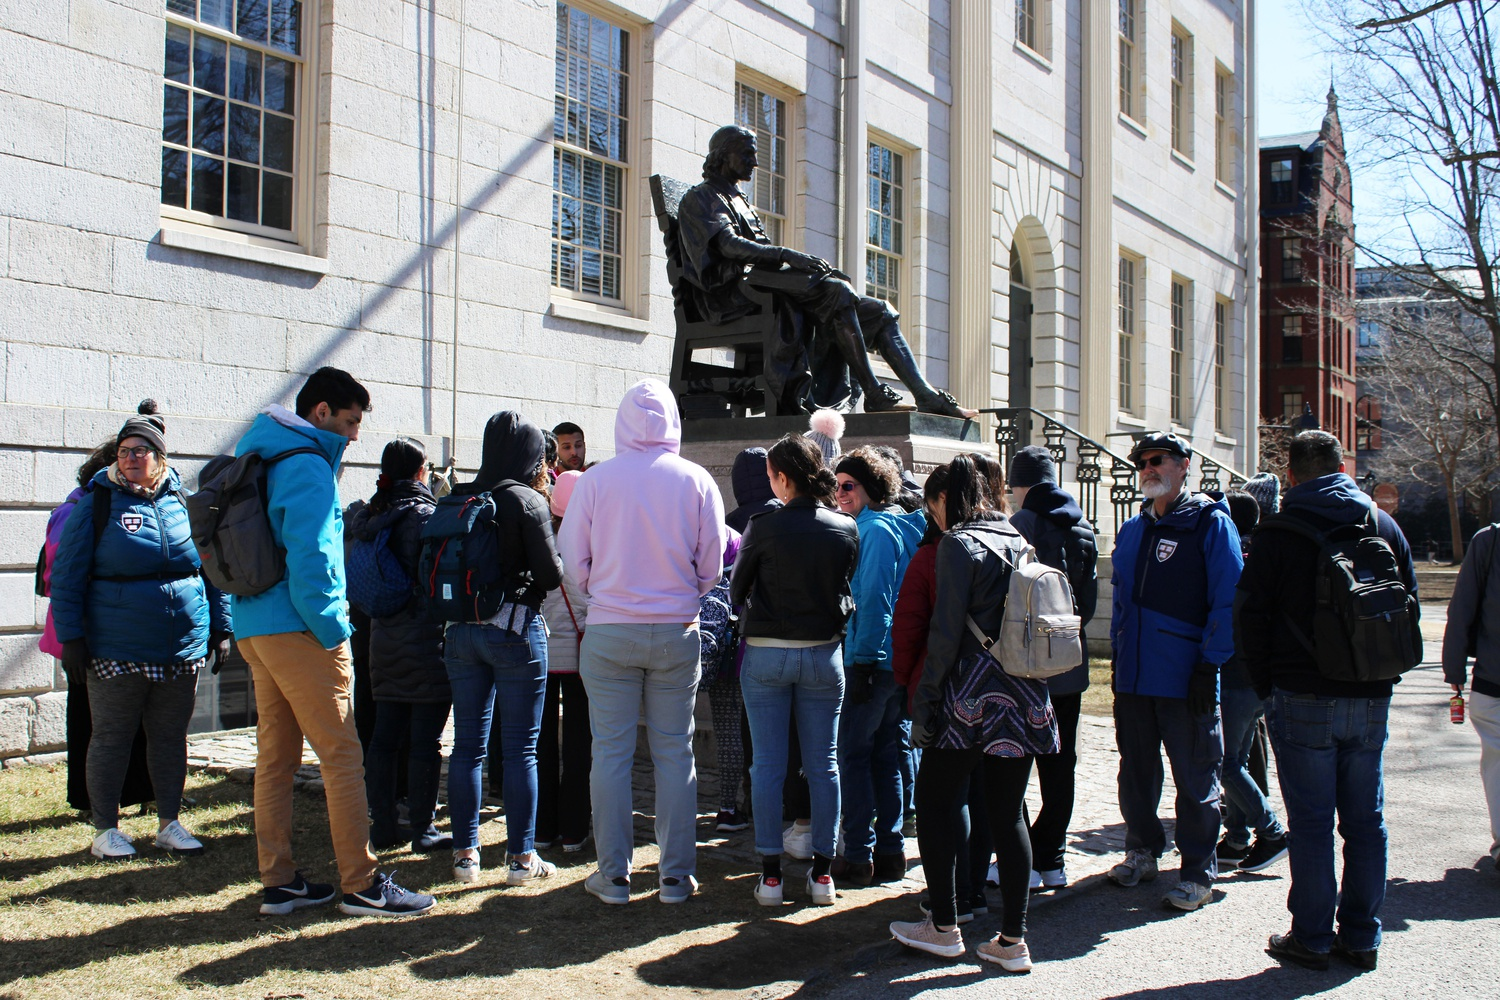 As winter ends, and the climate improves for outdoor activities, the size of tour groups around Harvard increase in number. The campus attracts curious tourists and prospective college applicants.